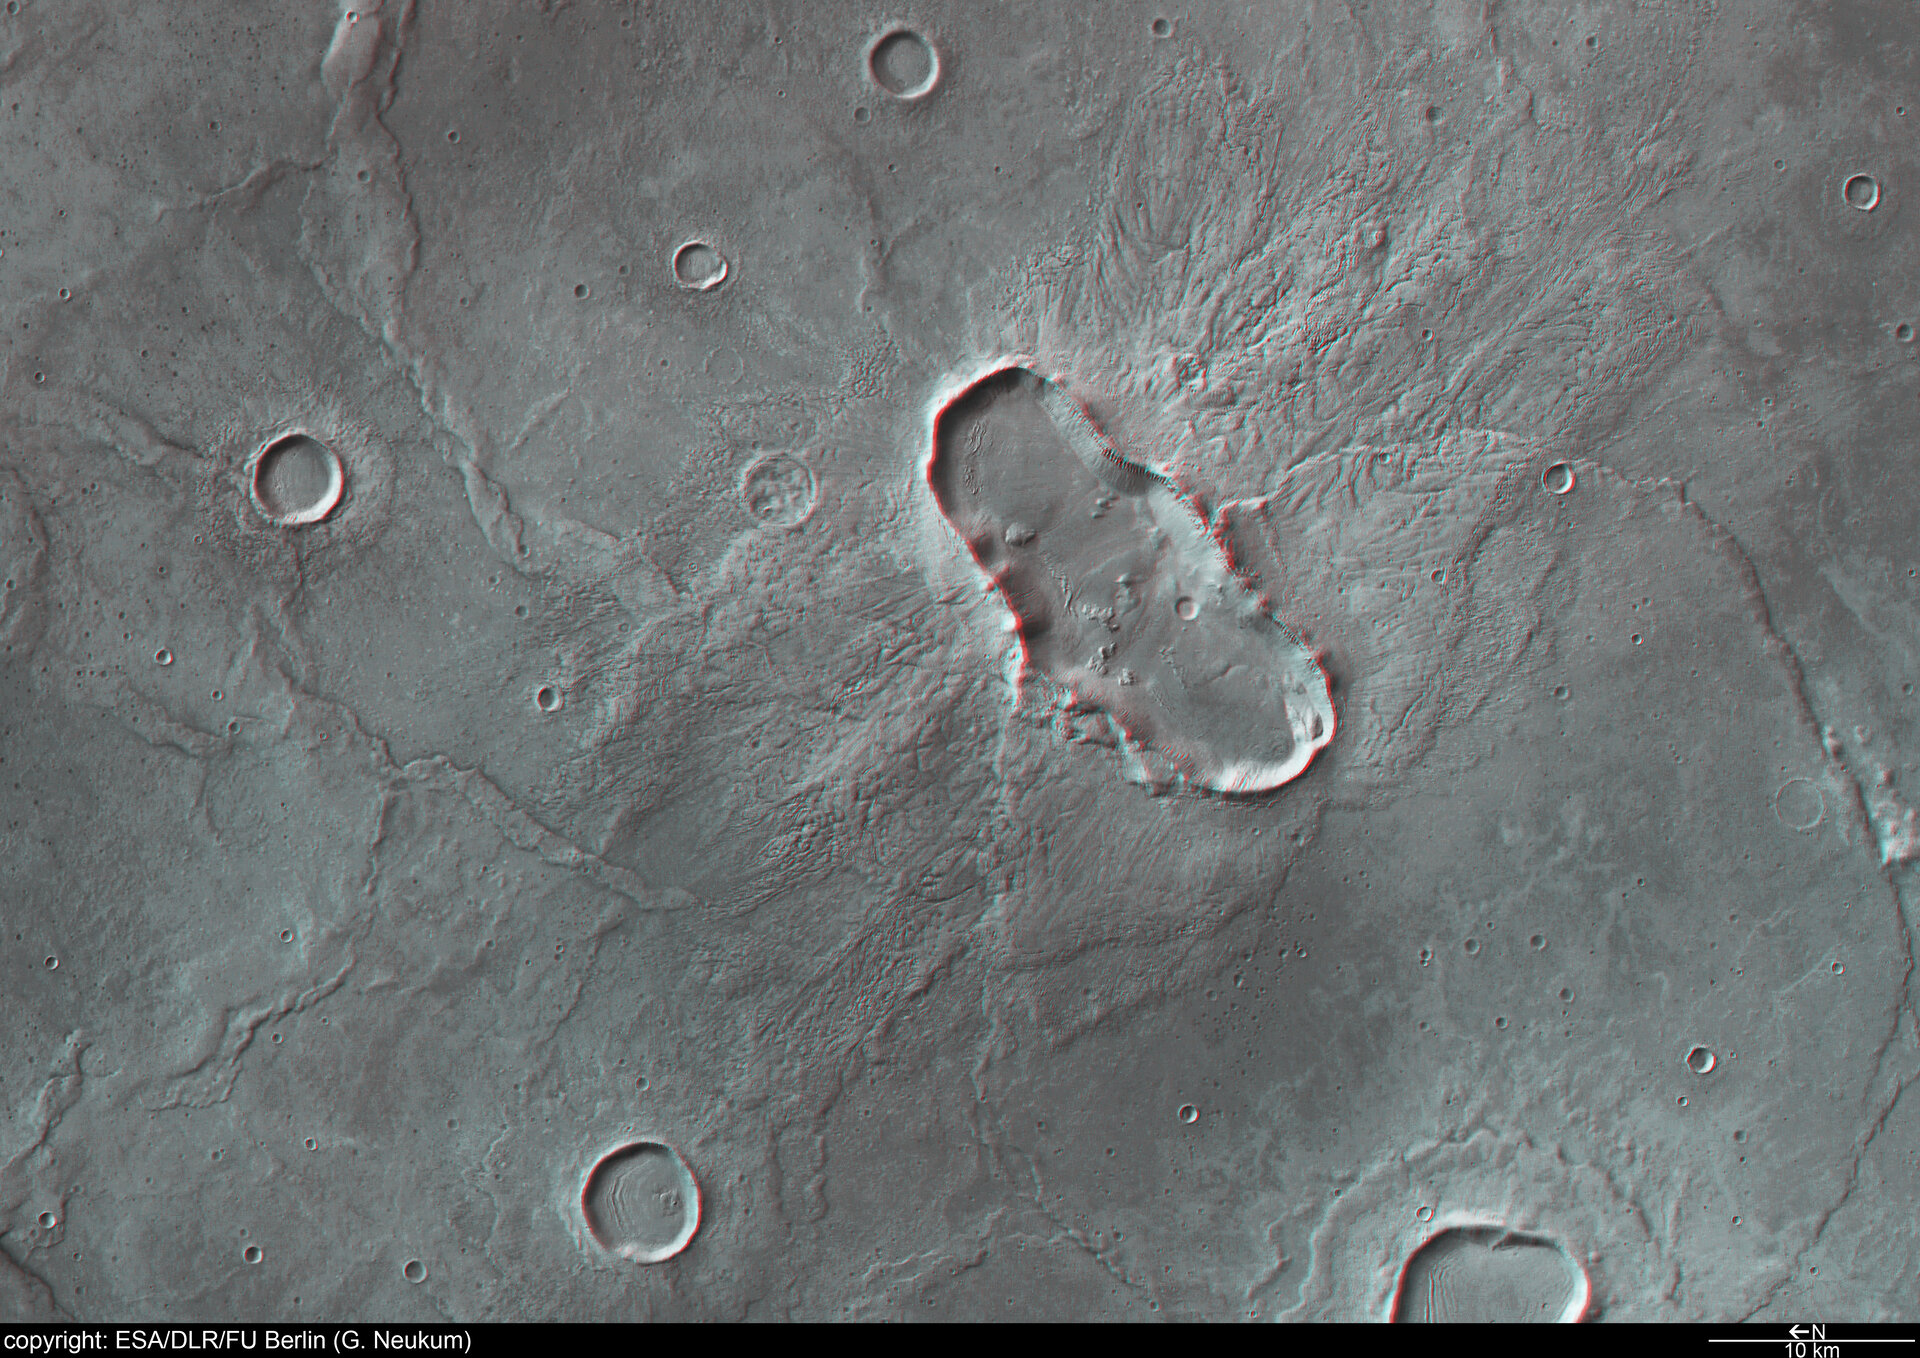 3D anaglyph view of Hesperia Planum